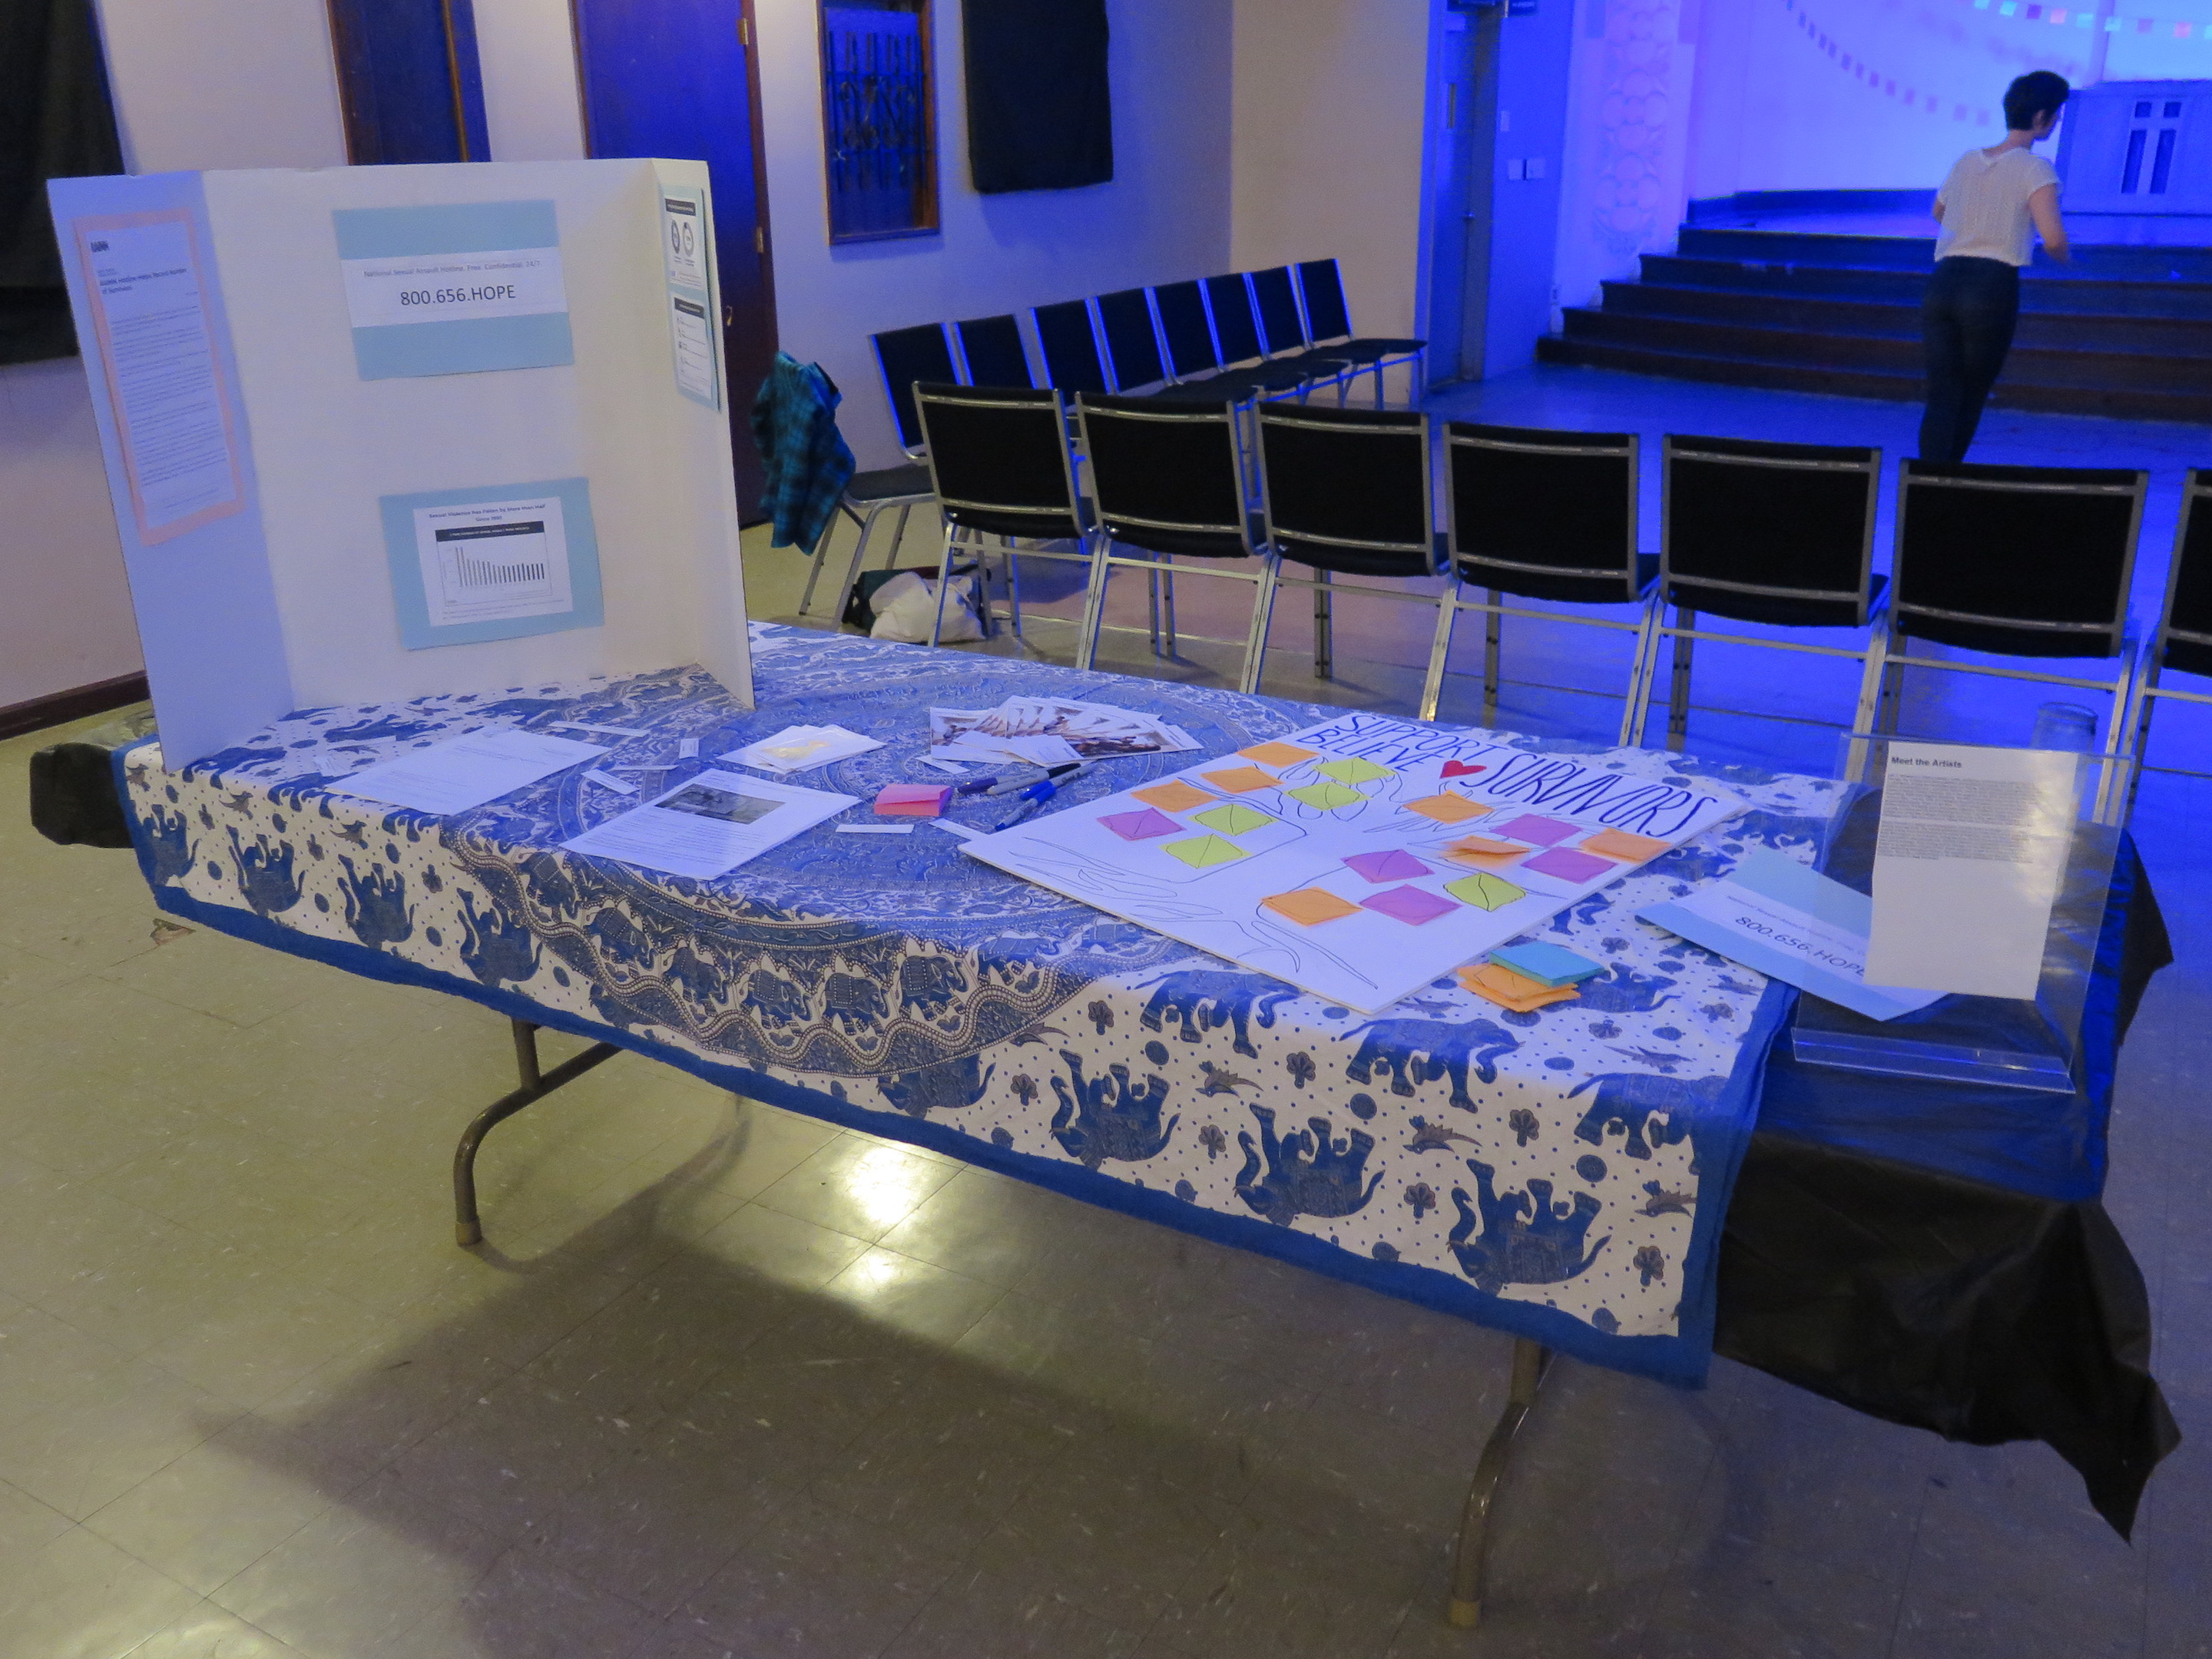 "Image: The interactive display related to Lani T. Montreal and Maxine Patronik's performance ""Blood Memory,"" at the Chicago Danztheatre Auditorium as part of the Body Passages culminating event. In the foreground, a table is covered with blue-and-white elephant-print cloth, a tri-fold posterboard, and various papers, including a large one that reads ""SUPPORT BELIEVE"